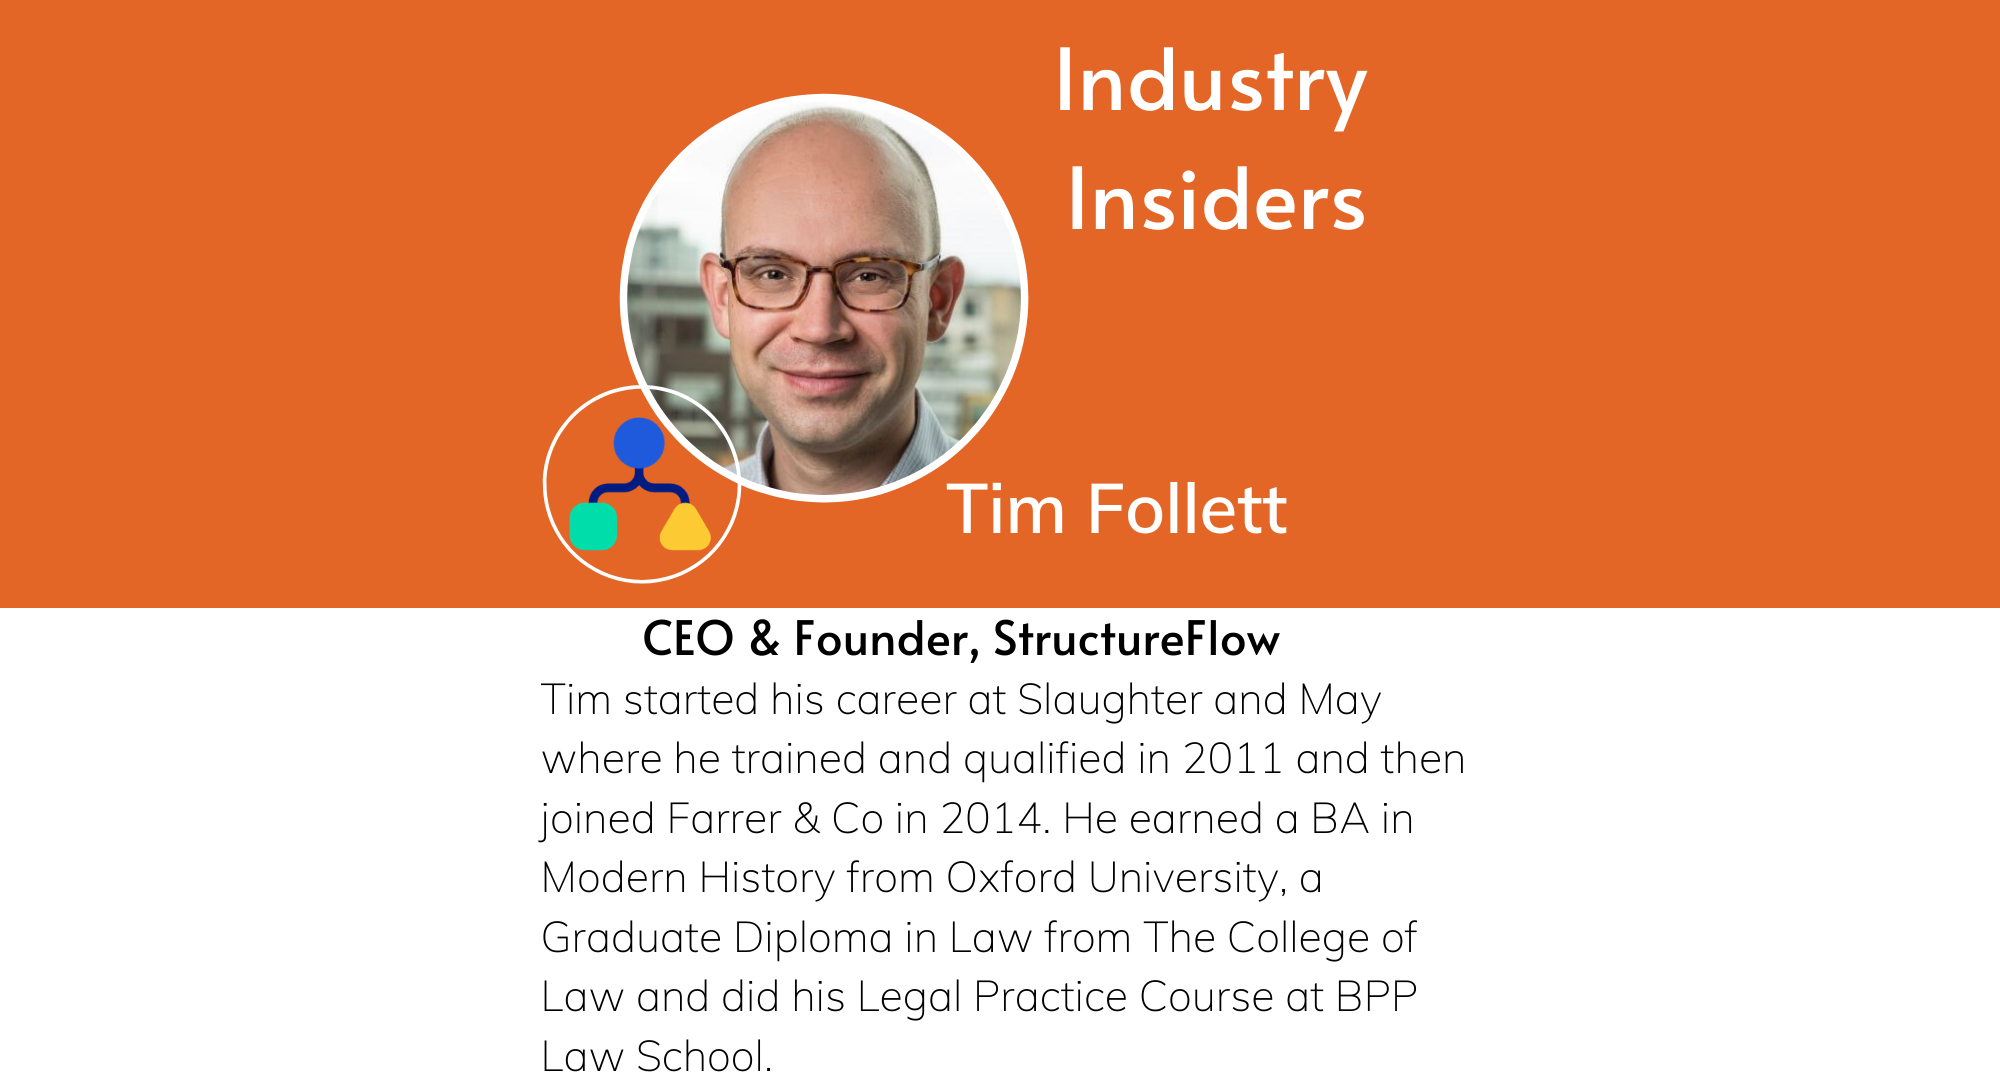 Industry Insiders - Visualising Legal Structures